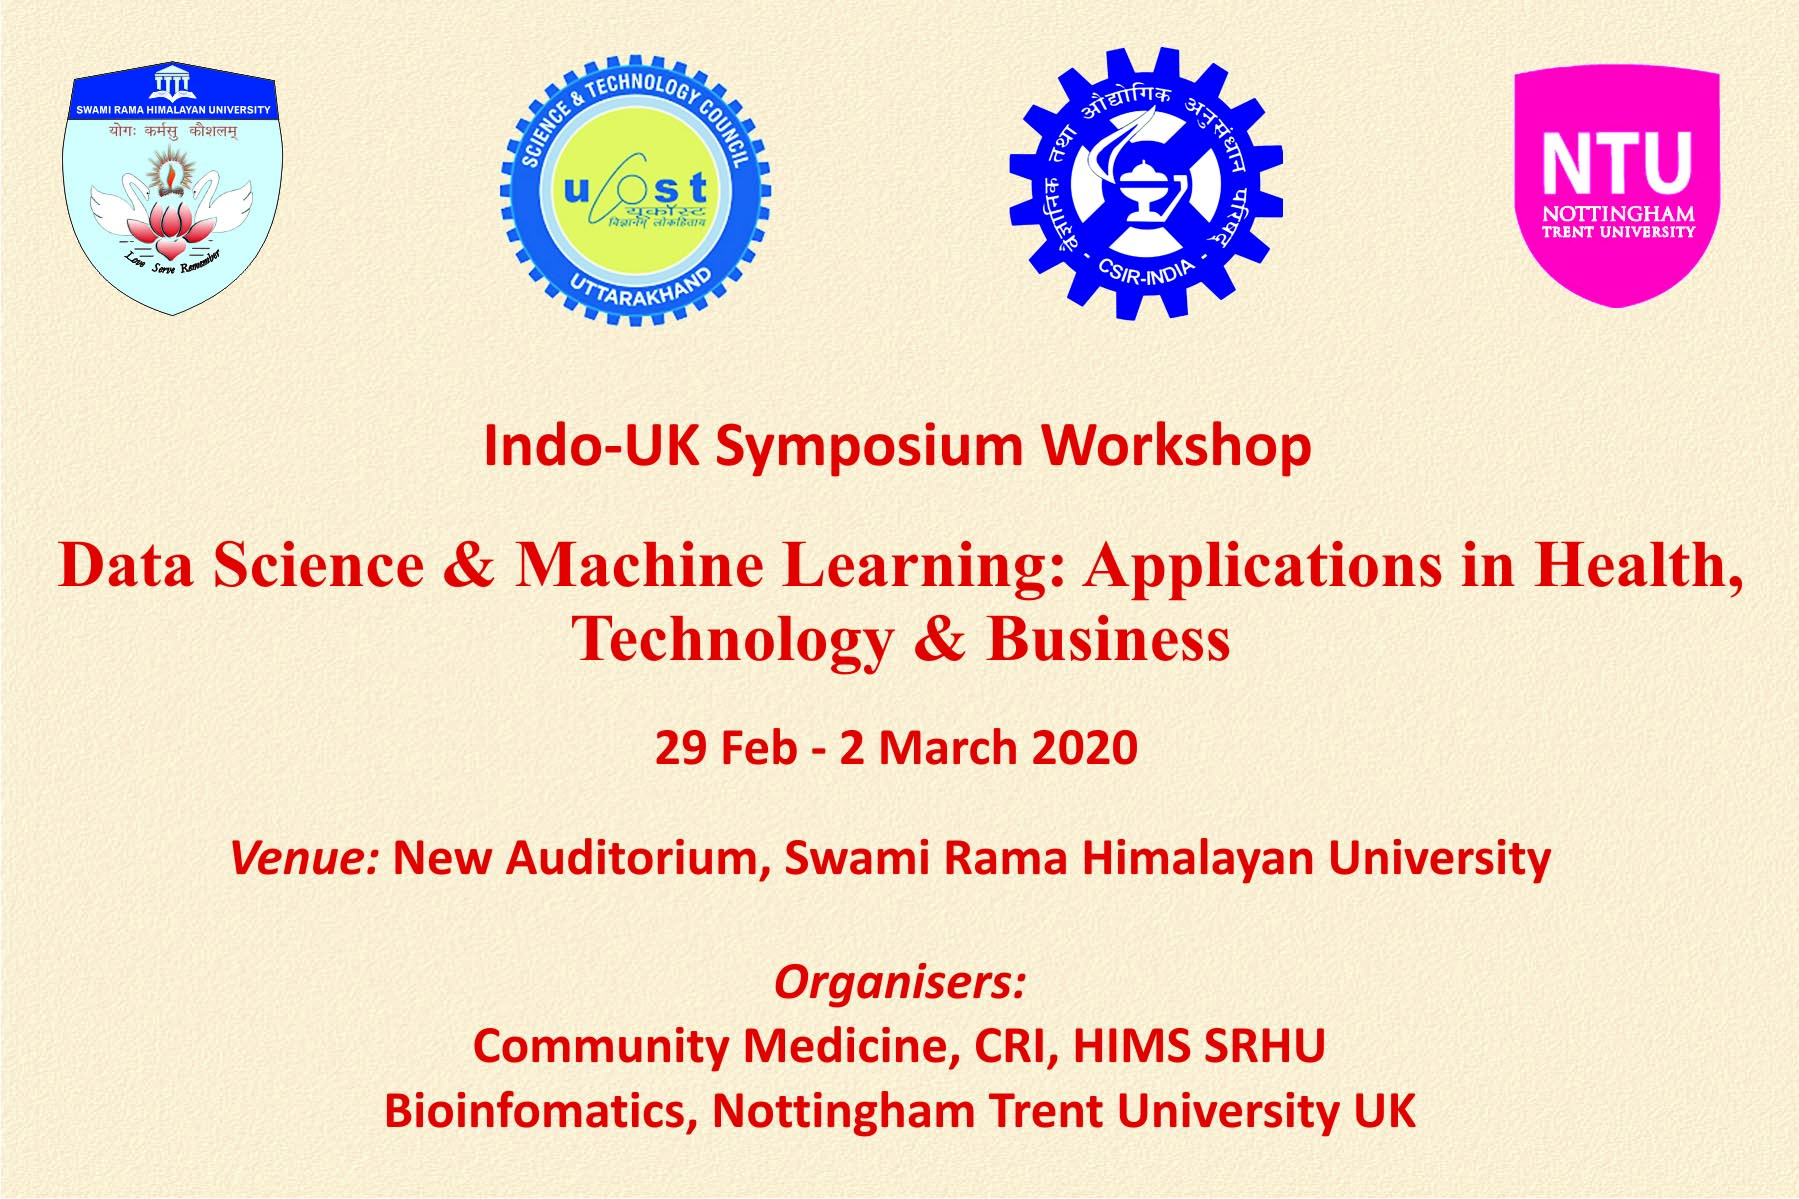 Data Science and Machine Learning Workshop in SRHU